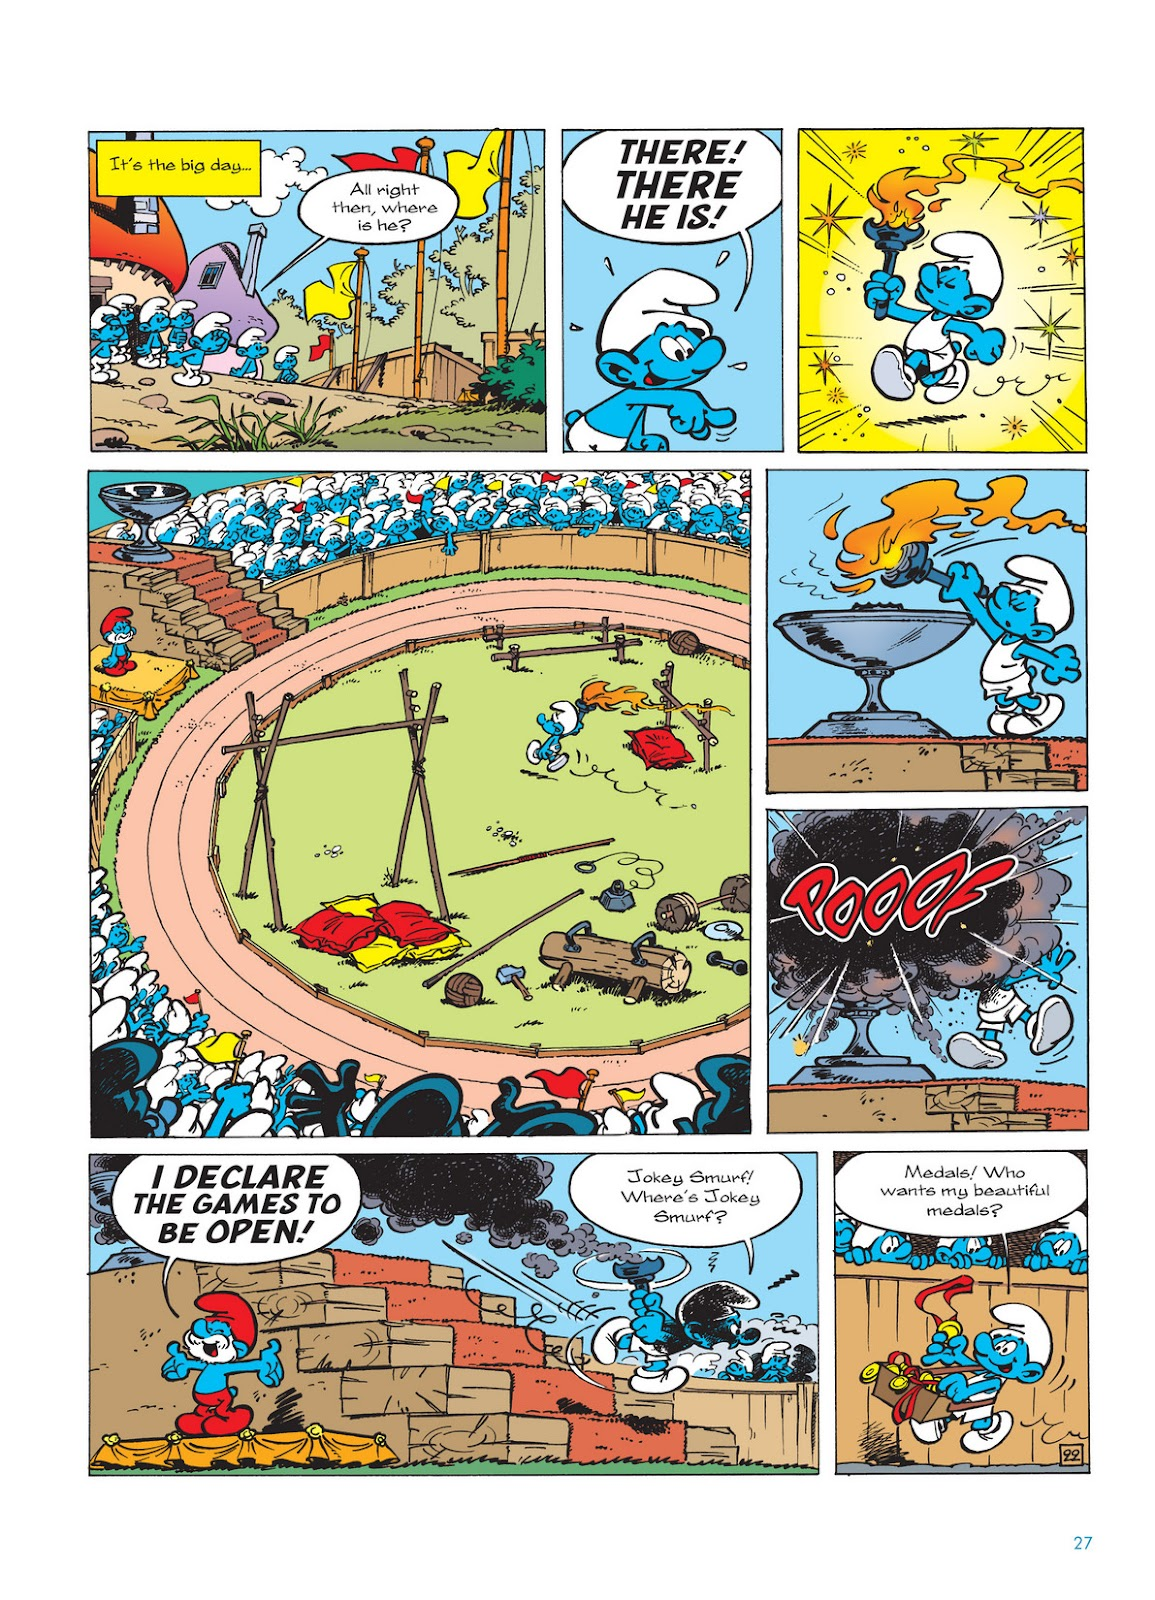 Read online The Smurfs comic -  Issue #11 - 27